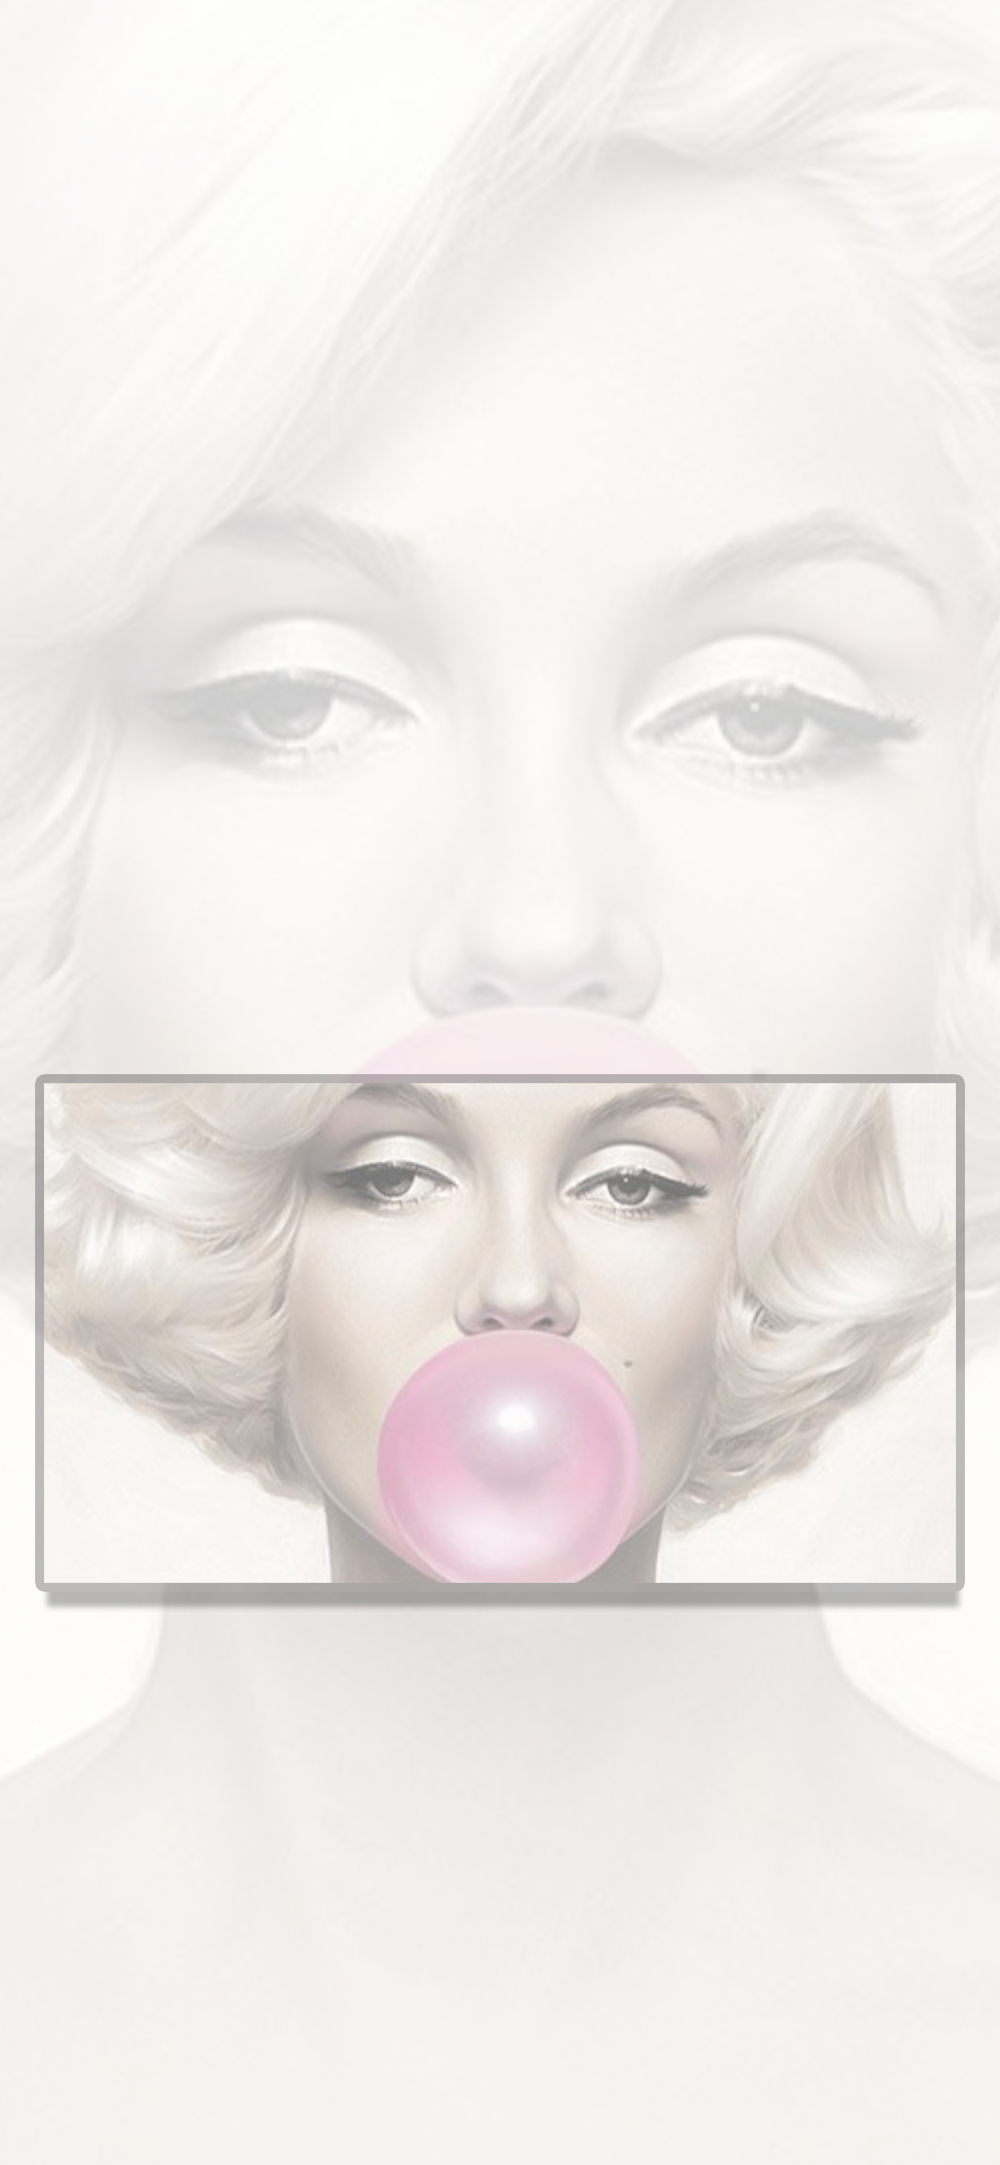 Wallpaper, background, iPhone, Android, HD, white, Marilyn